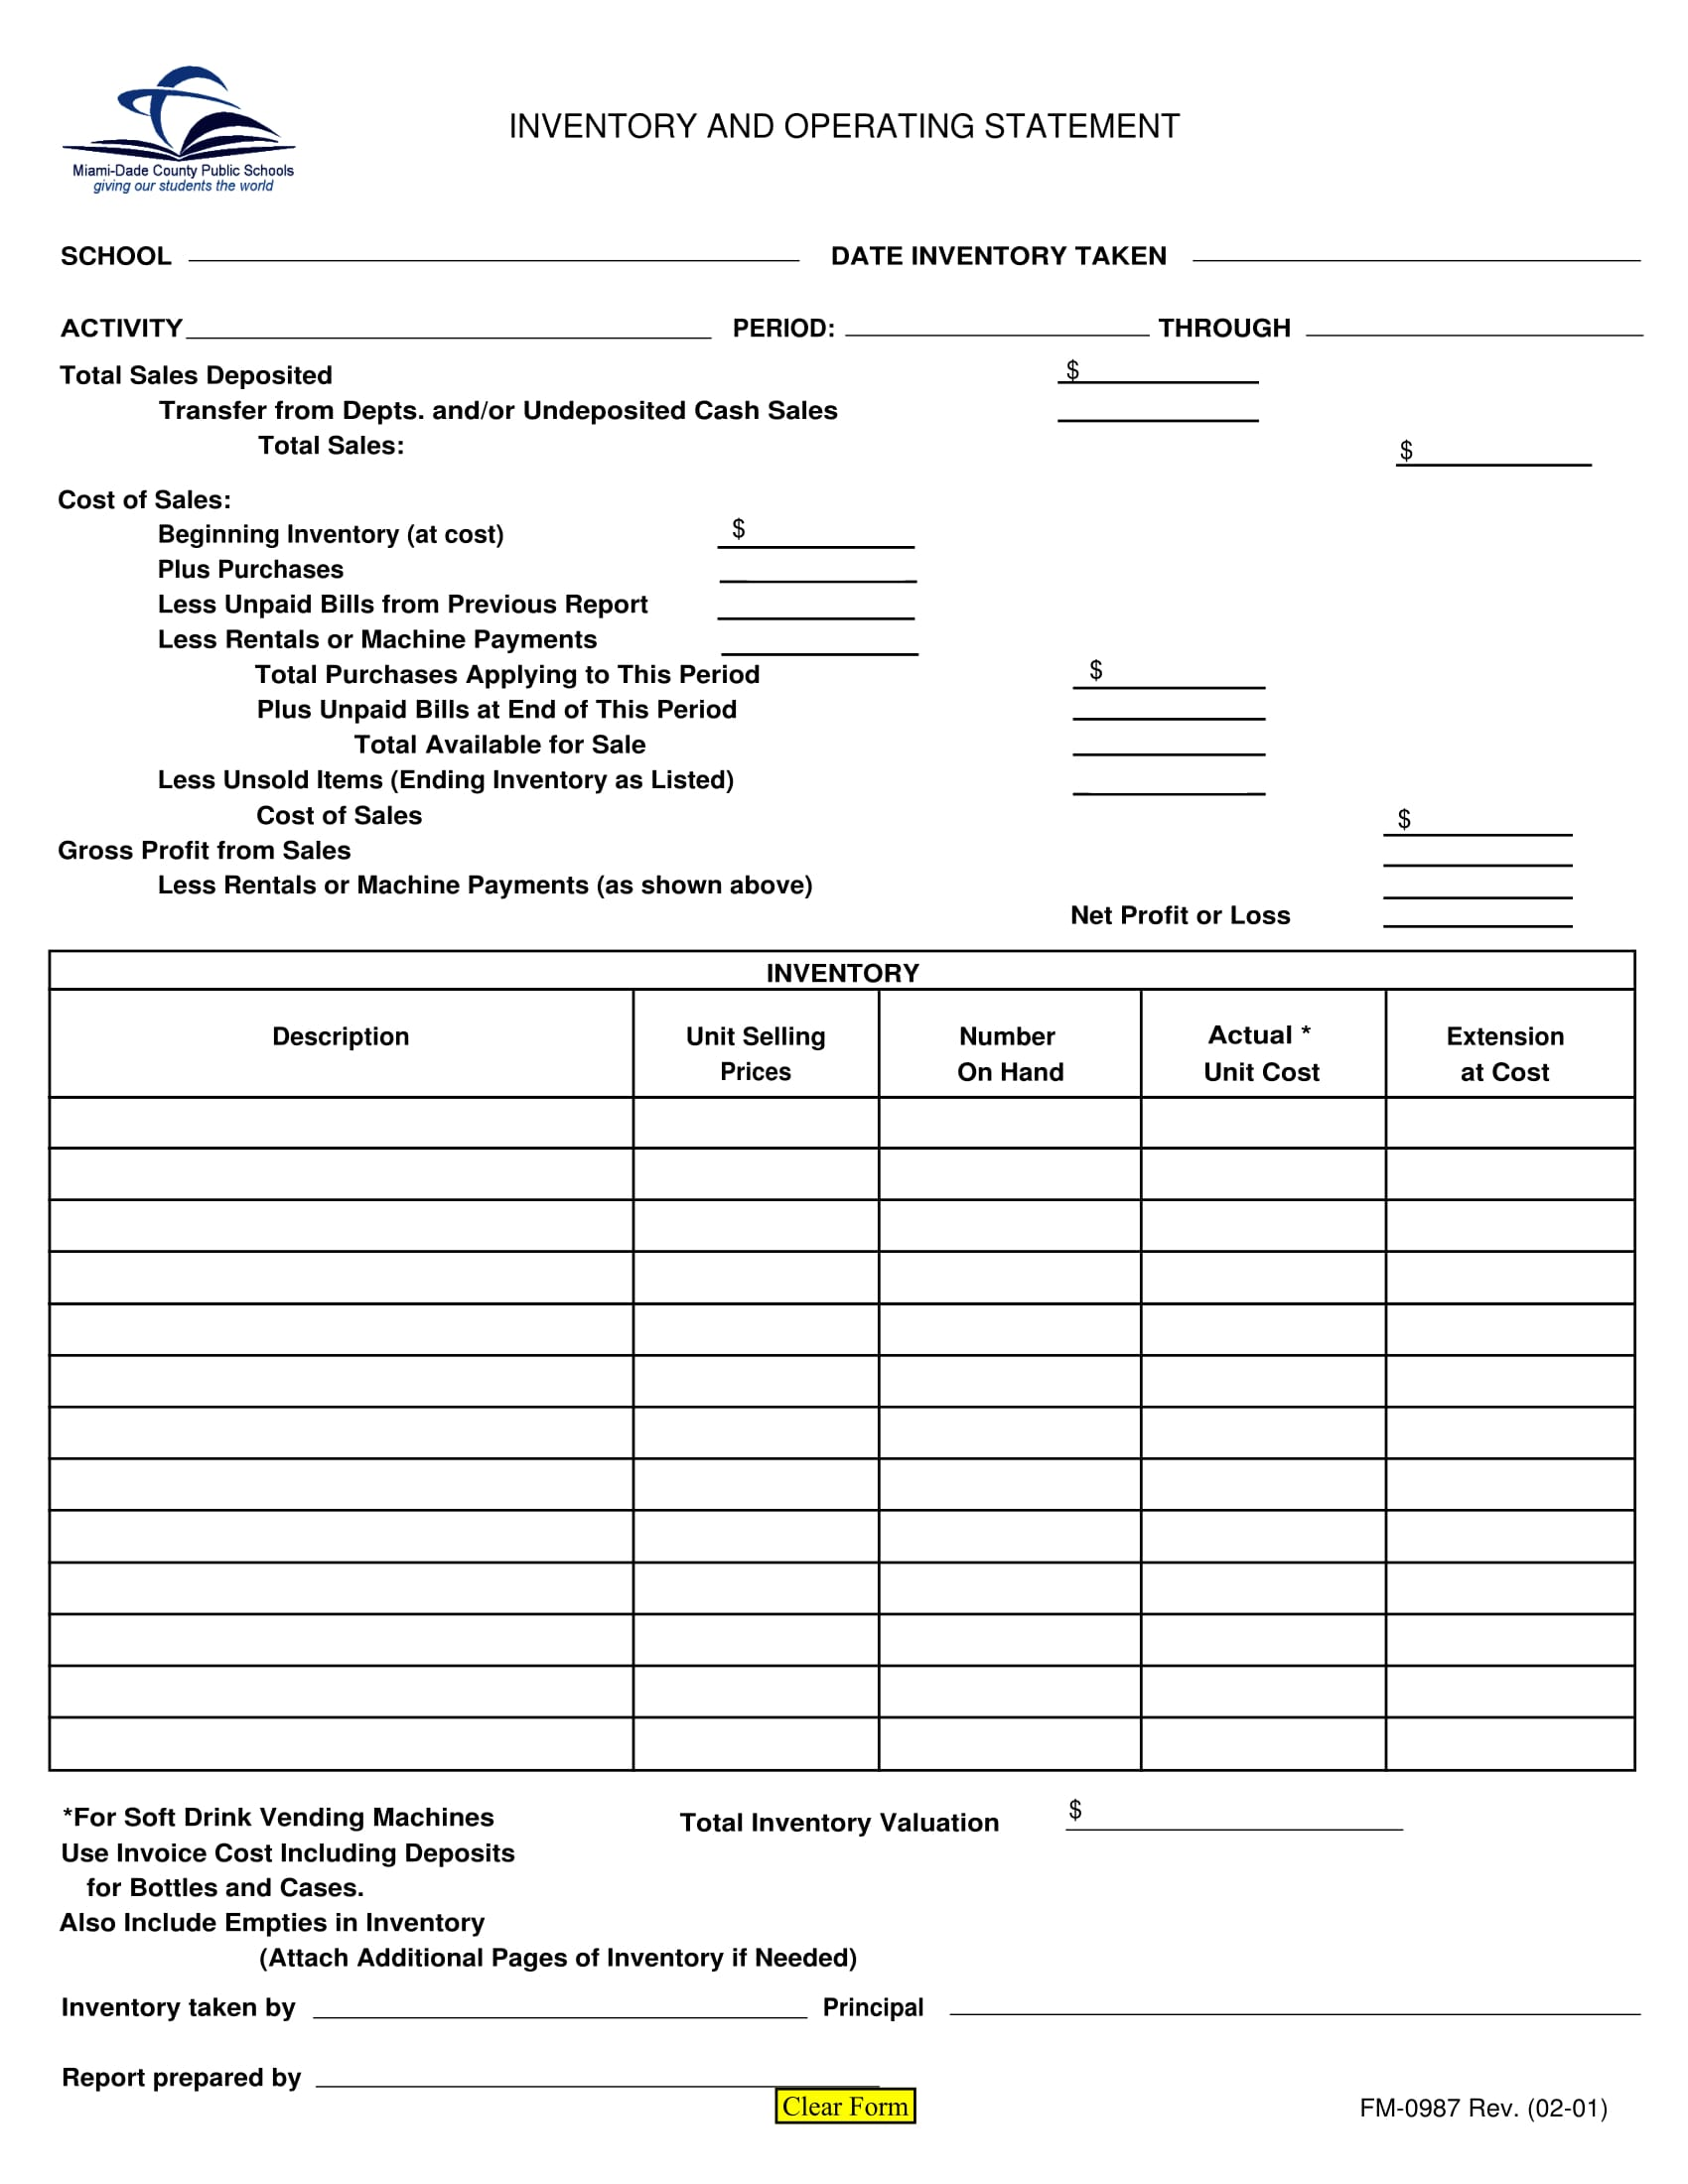 inventory and operating statement form 1